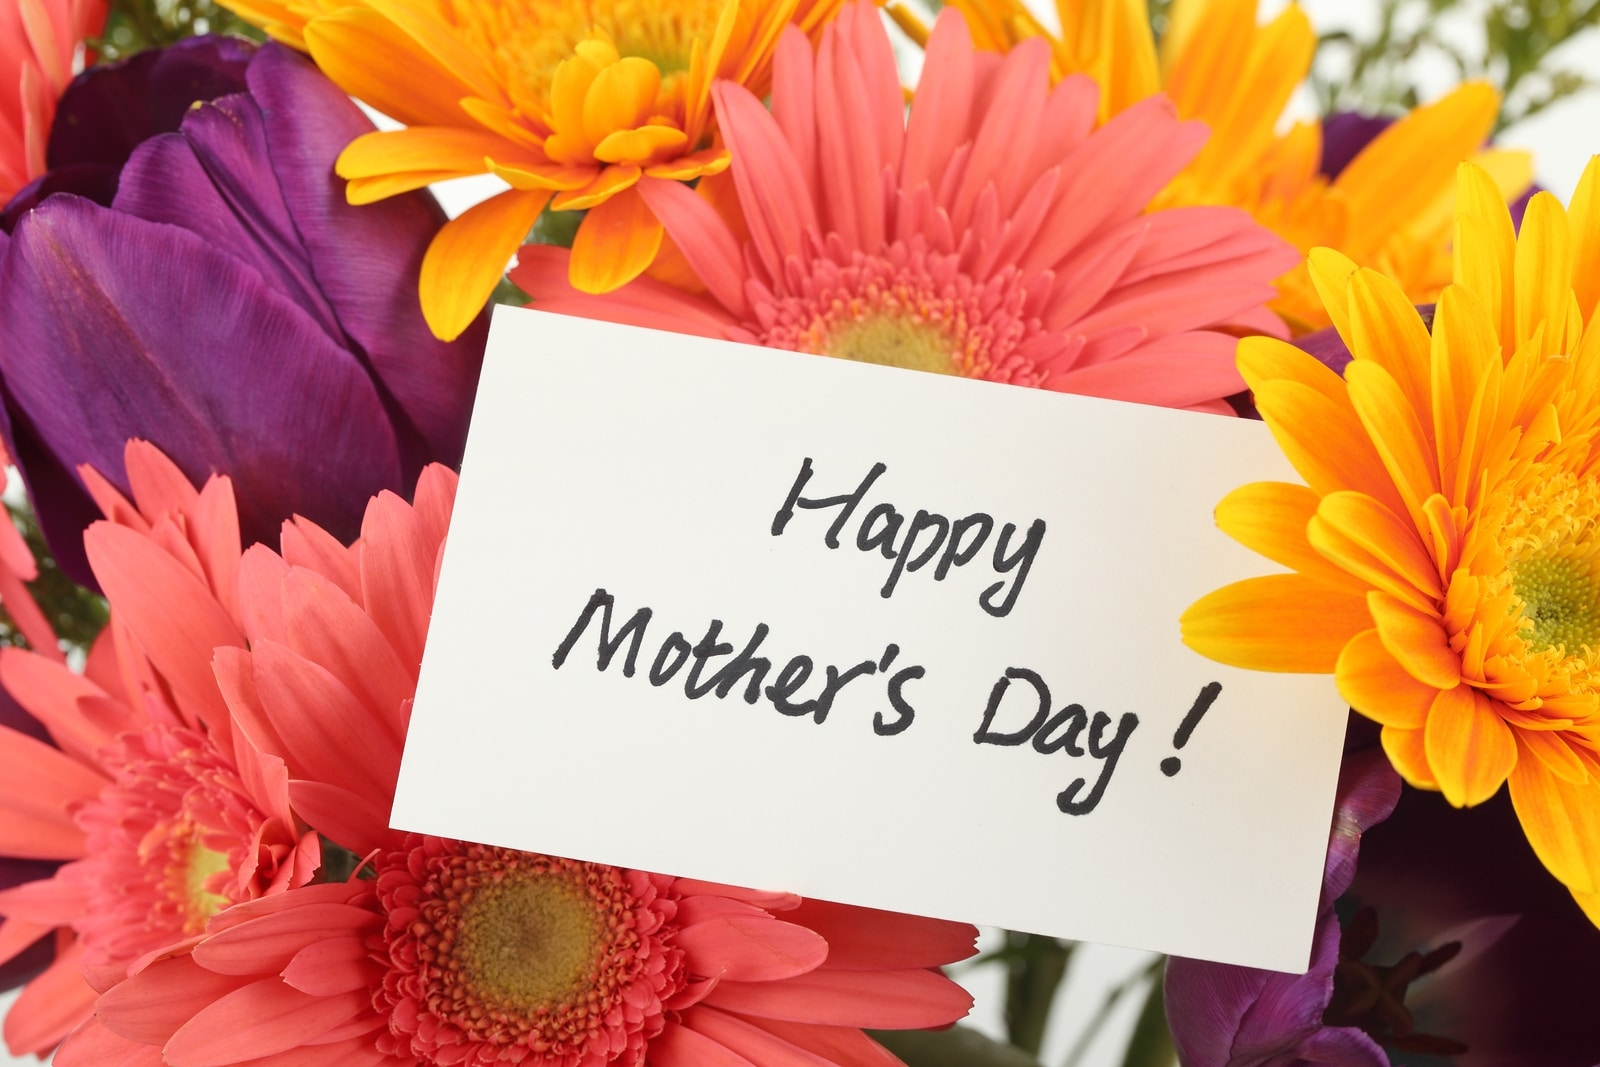 Happy Mothers Day Pic To Post